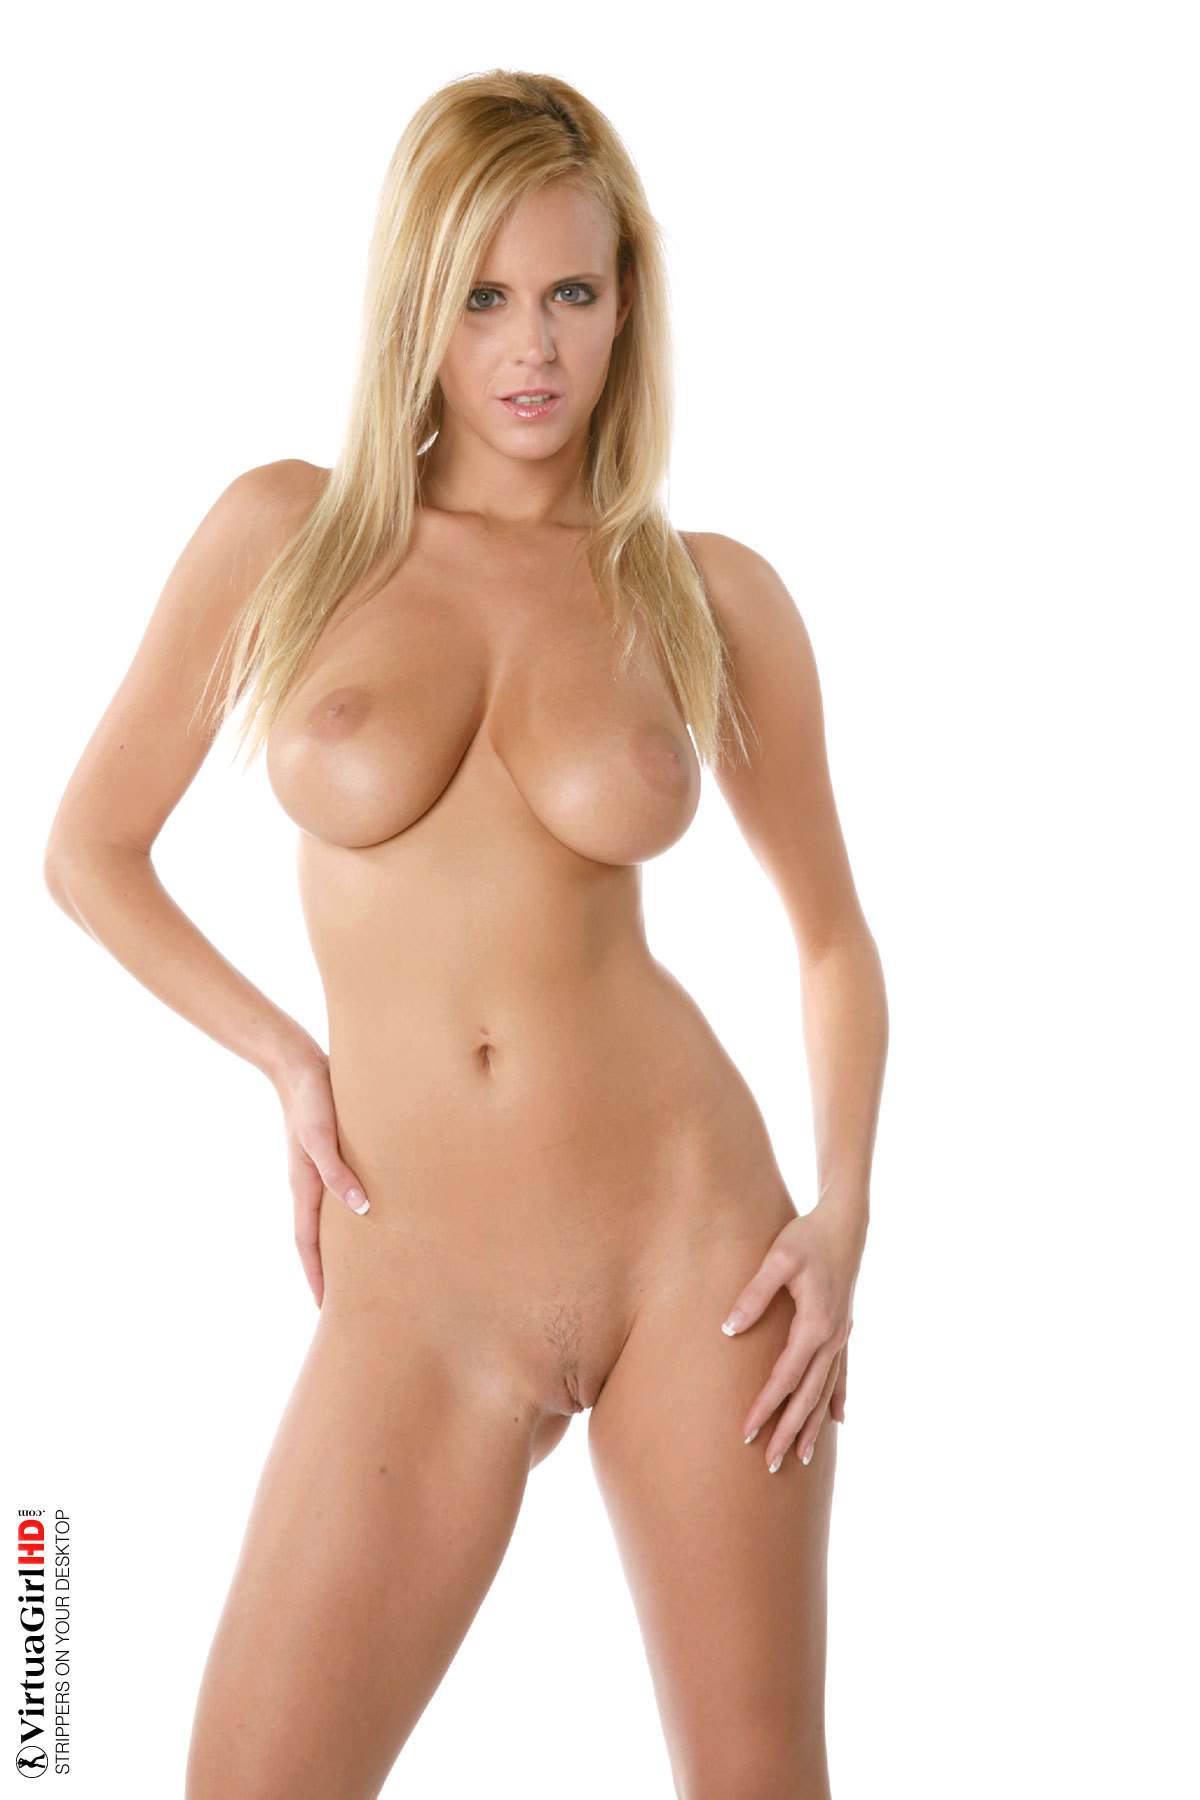 Really hot girl strippers naked